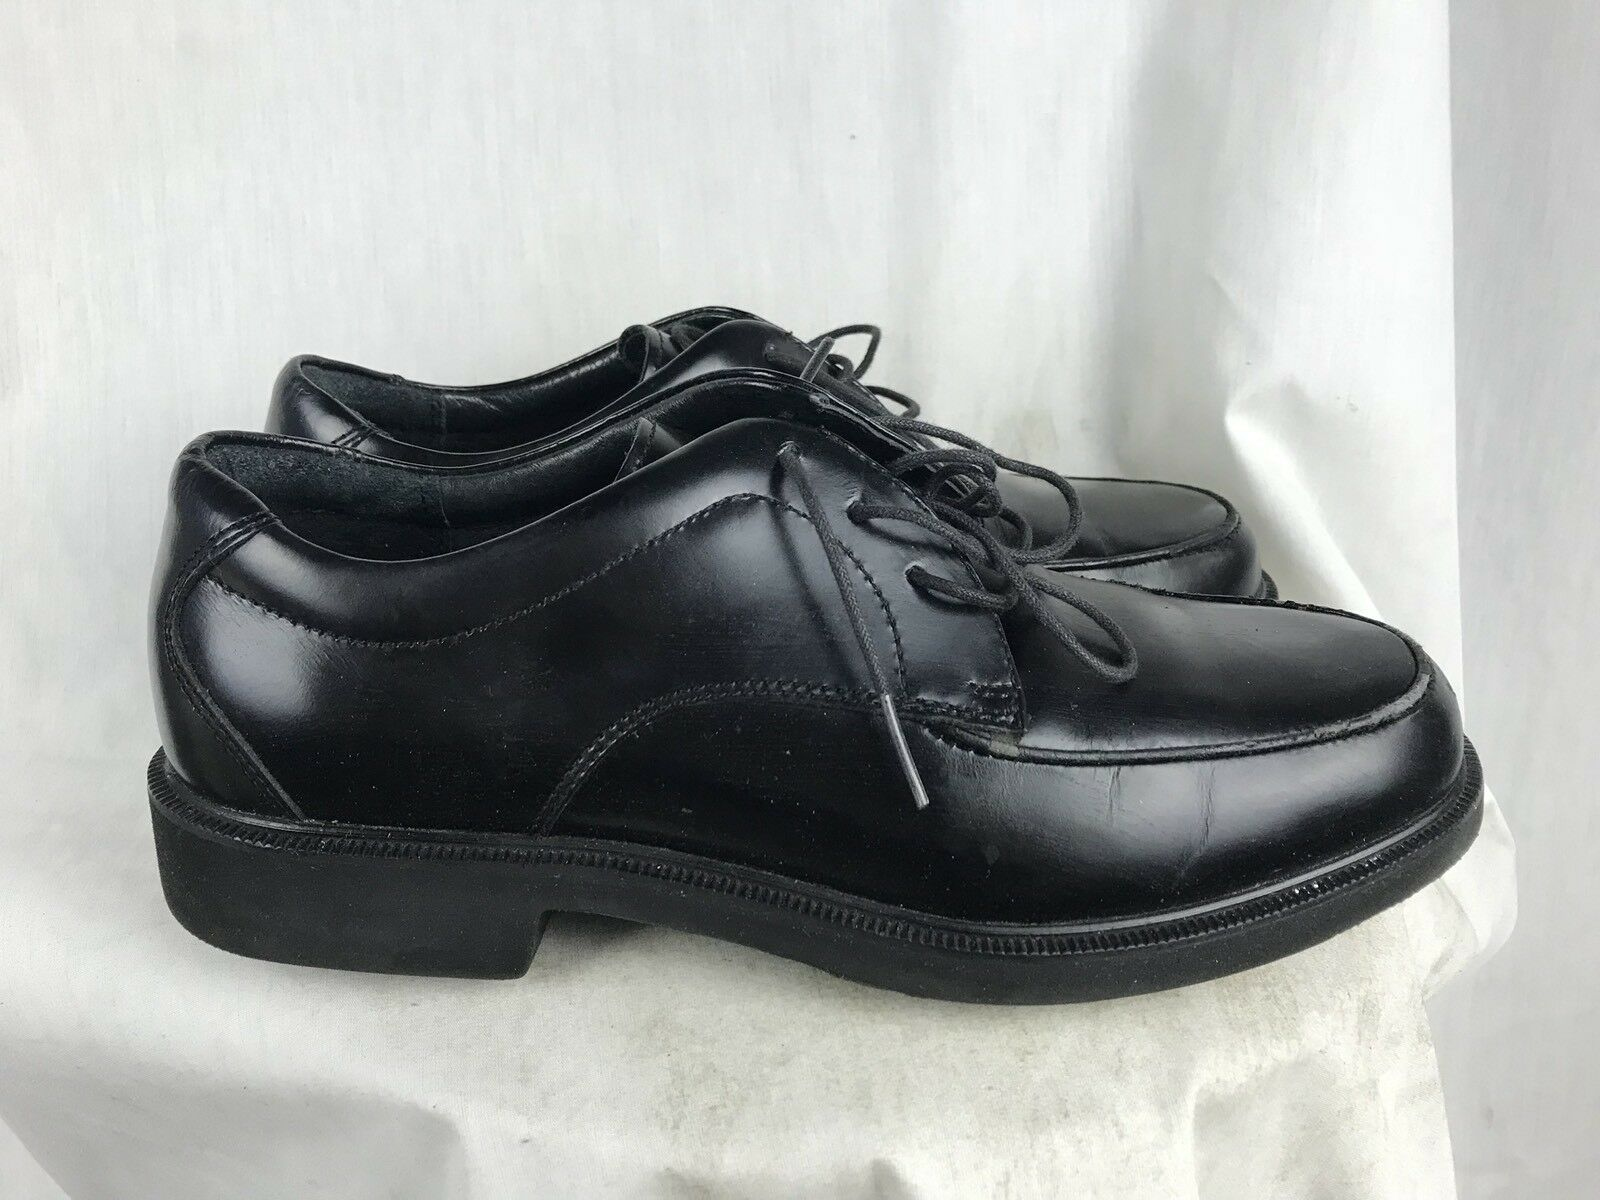 Tacco Mens Dress 7D Black Leather Oxford Dress Mens Shoes f8d92b